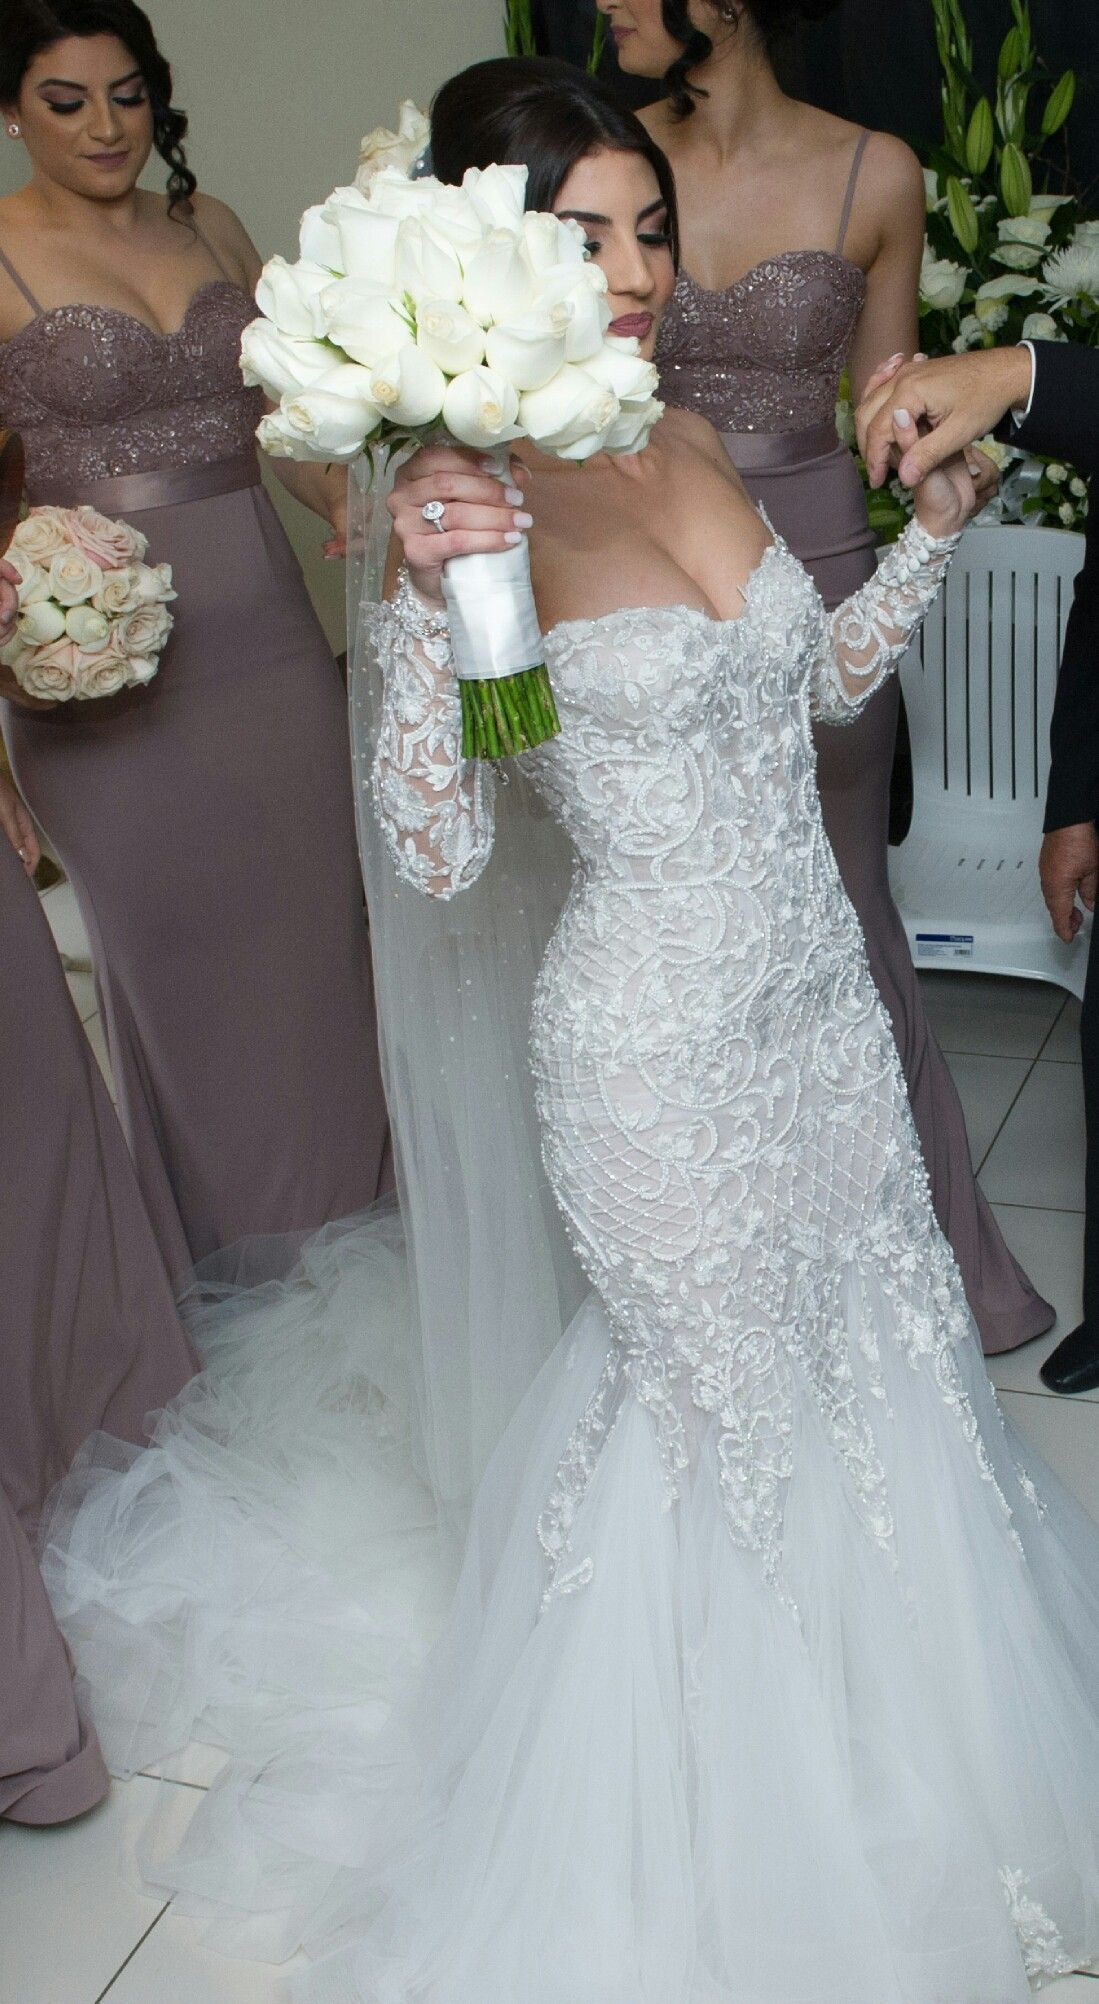 2f05eded51ad Long Sleeve Wedding Dress with Beaded Embroidery from Darius Bridal. Leah  Da Gloria Custom Made Wedding Dress on Sale 46% Off